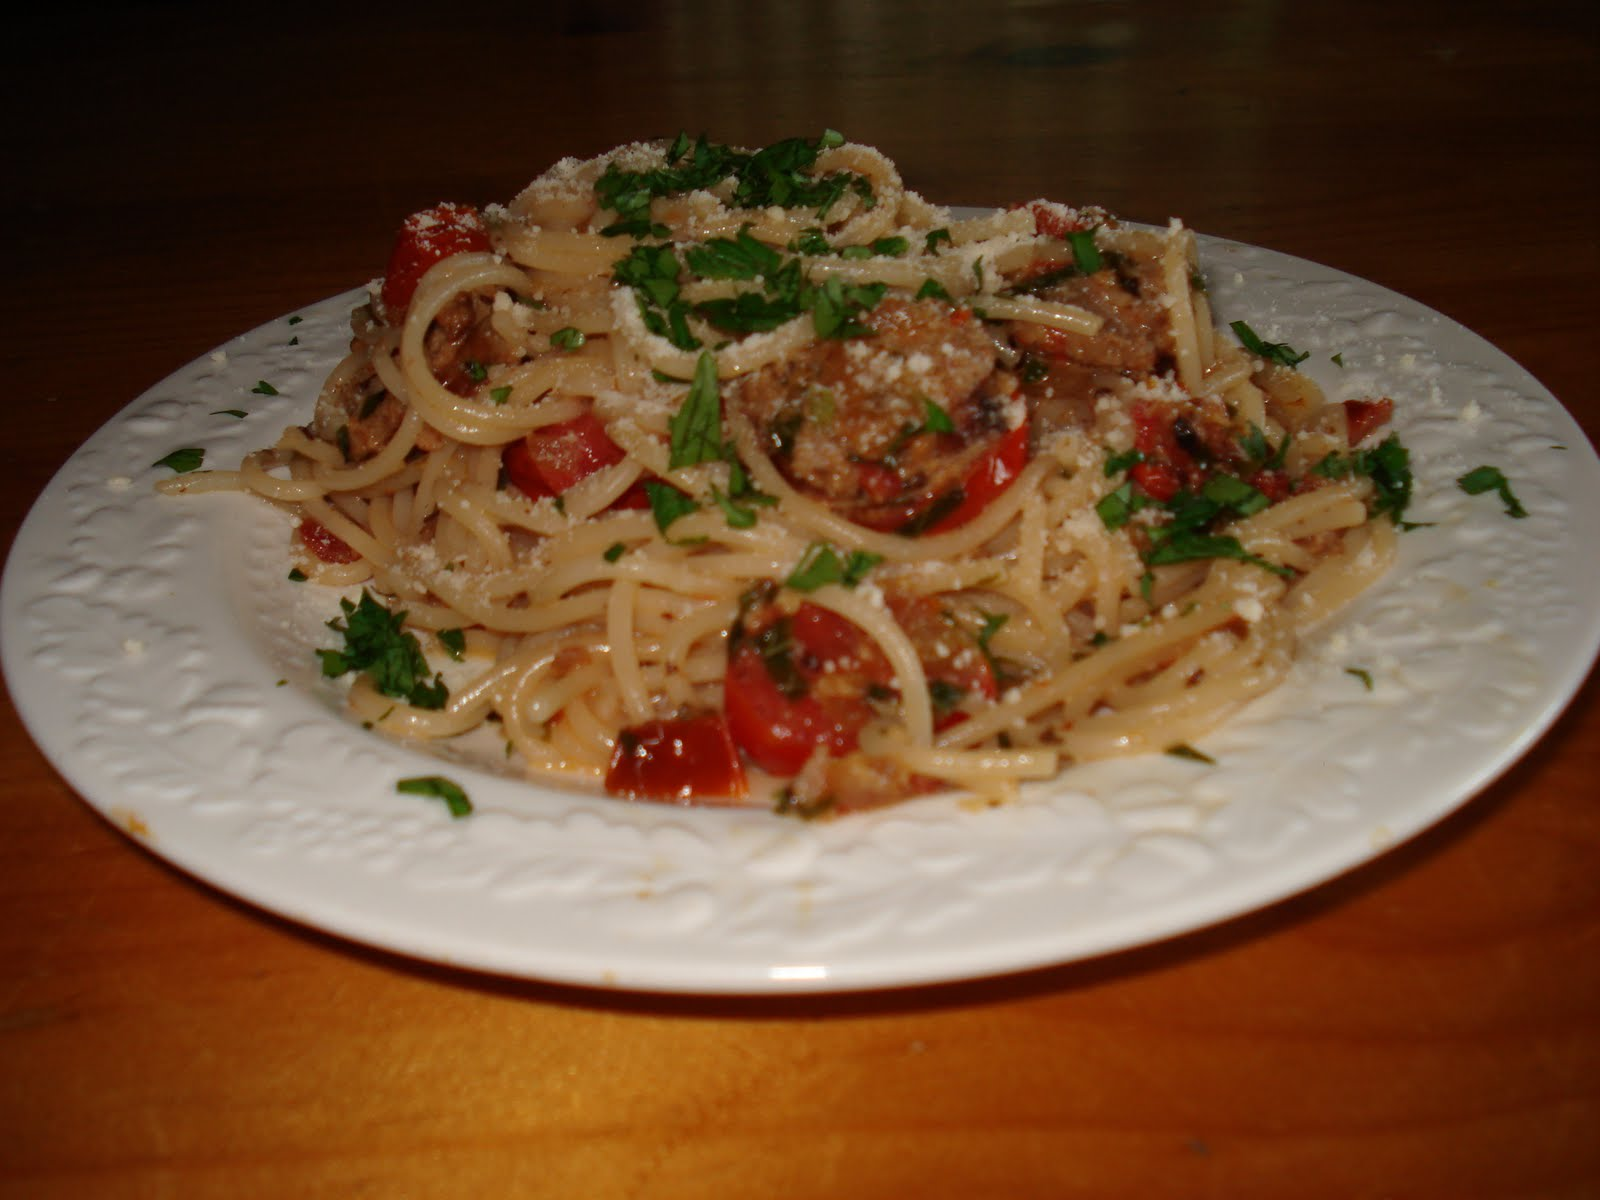 ... Gluten Free for Life: Pasta with Turkey Sausage and Grape Tomatoes